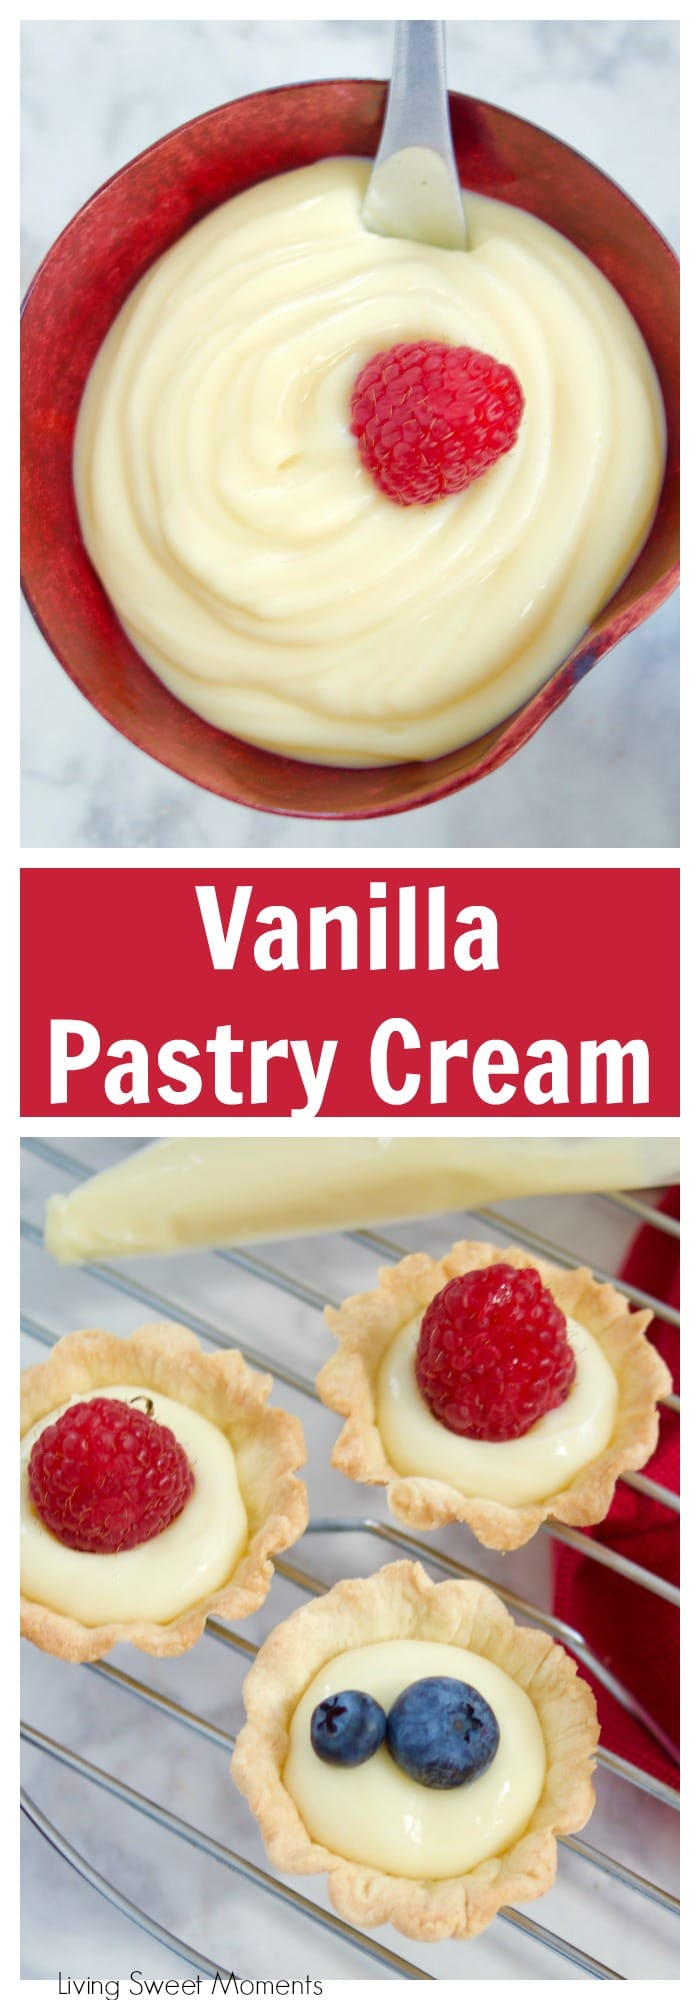 This delicious Vanilla Pastry Cream or Creme Patisserie recipe is creamy, easy to prepare, and is the perfect filling for donuts, cakes, pastries, and more